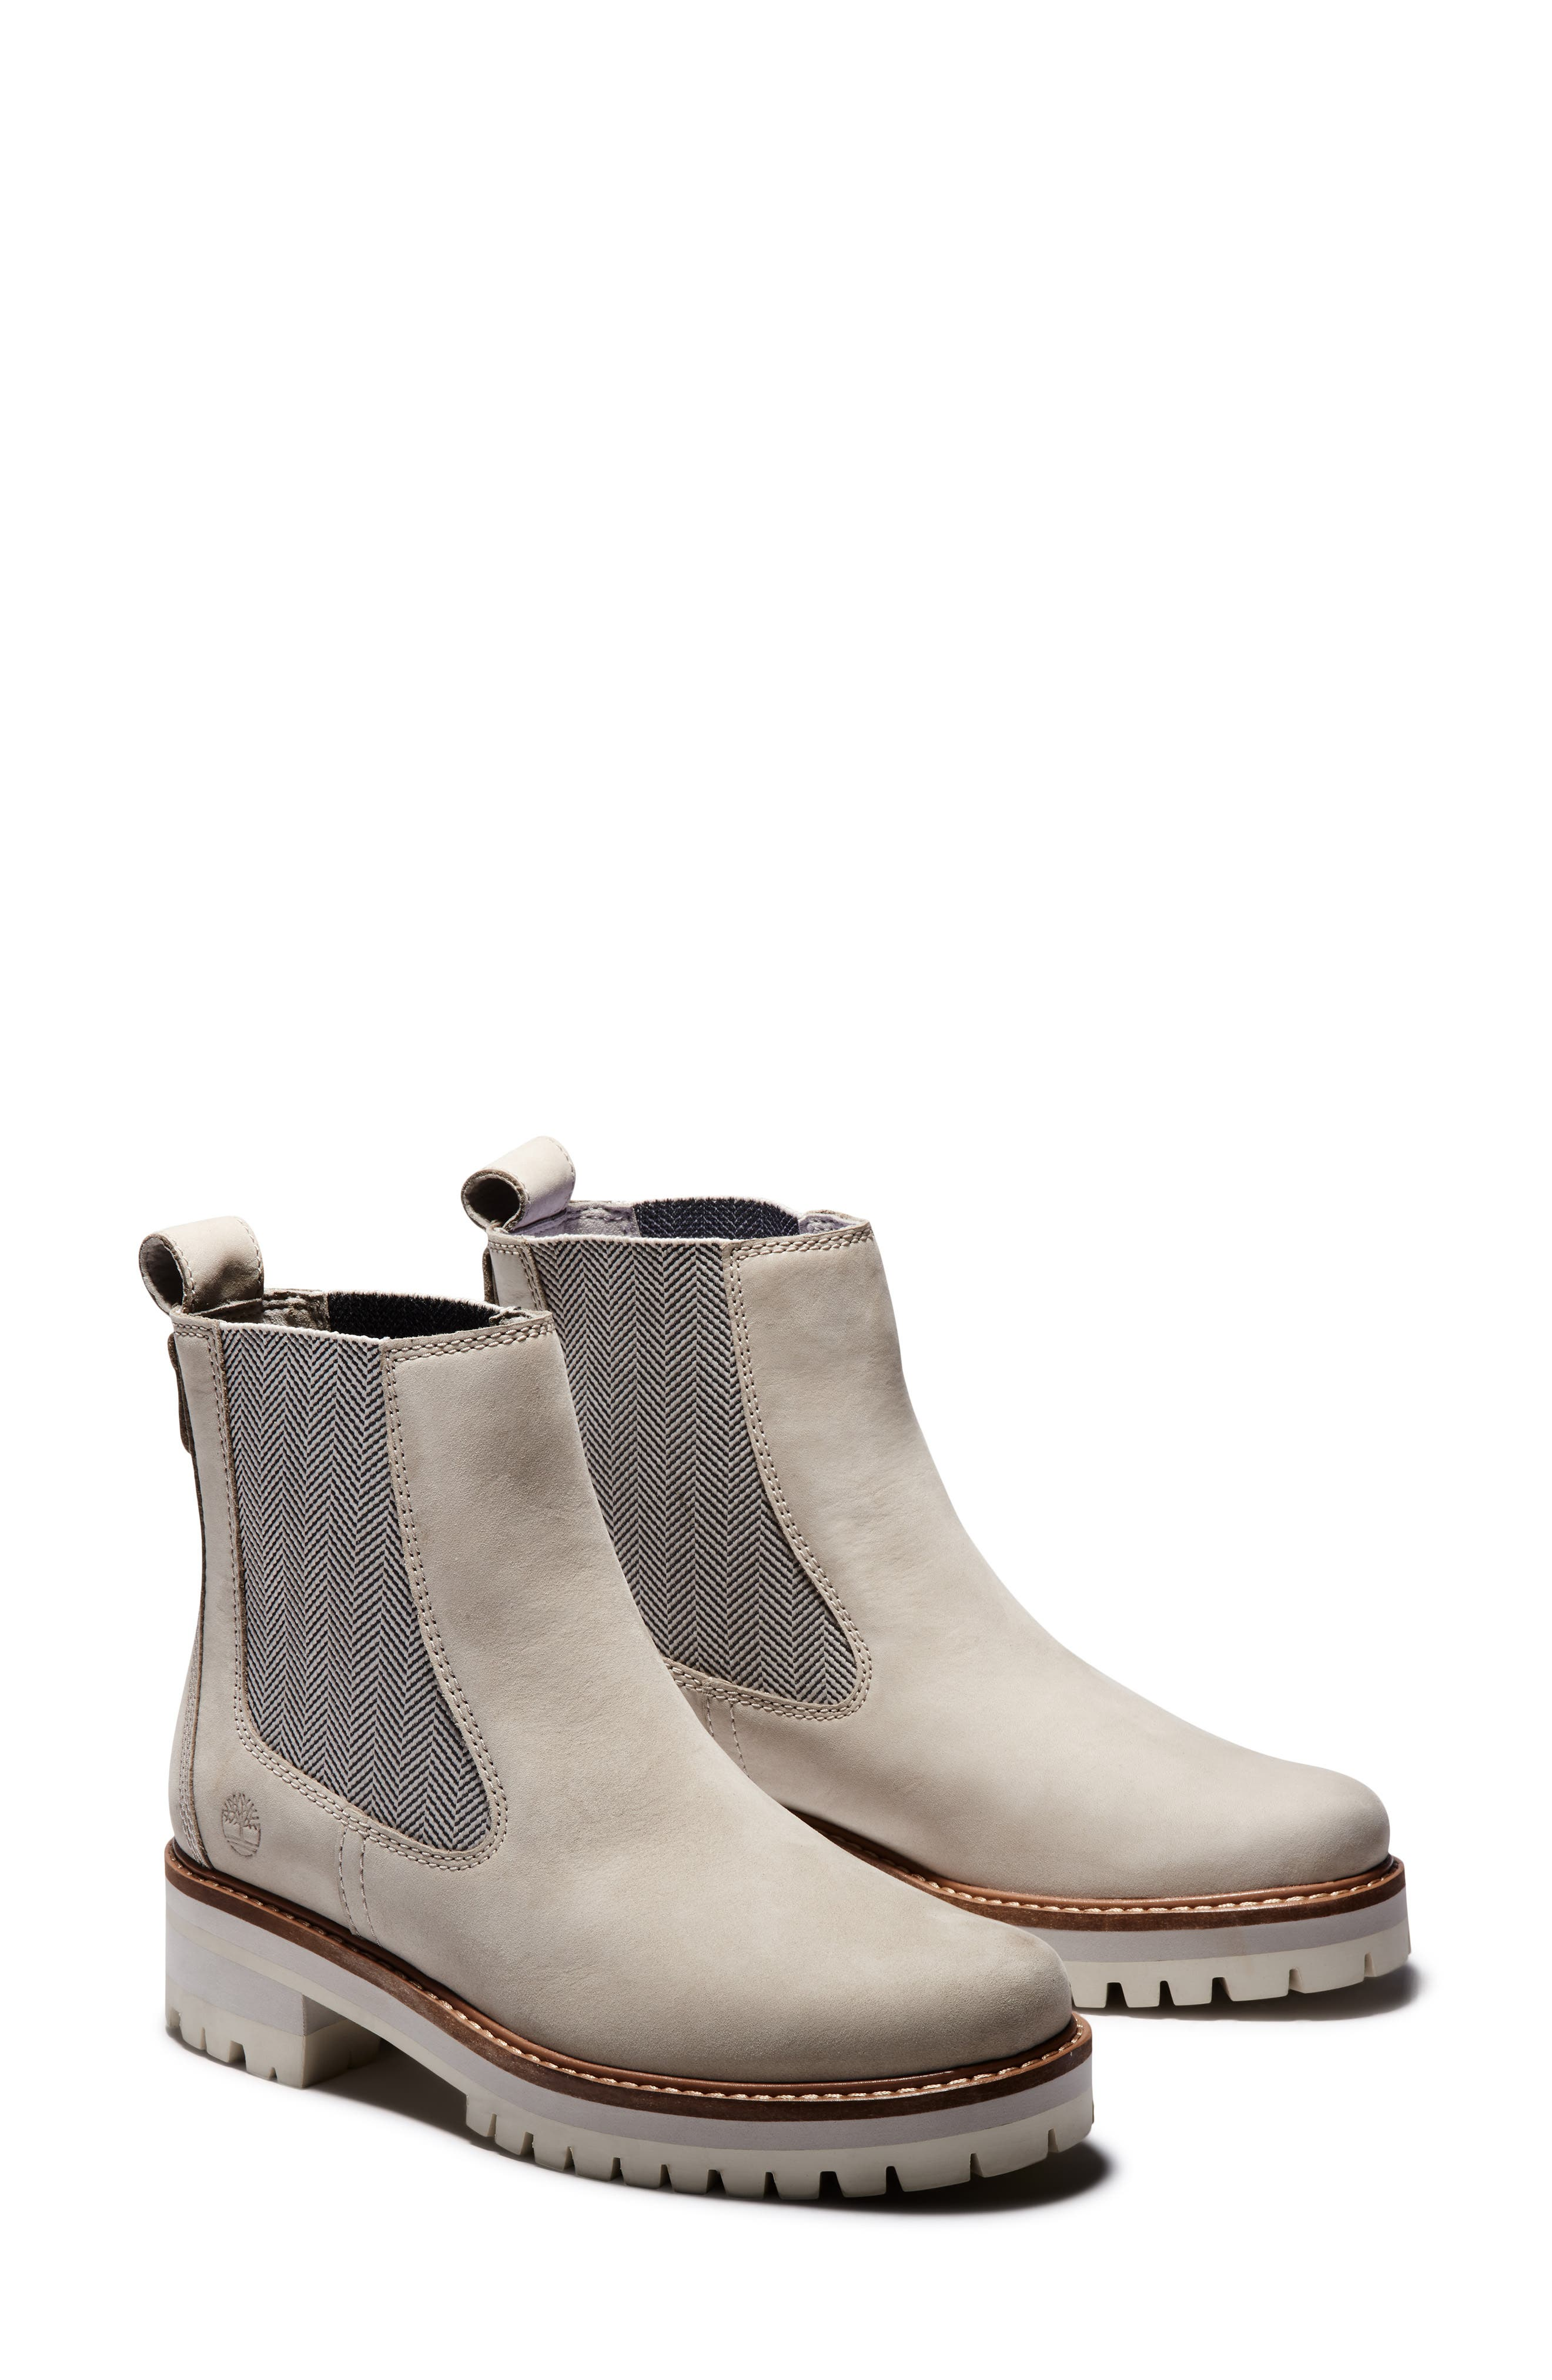 Women's Timberland Comfortable Shoes Nordstrom  Nordstrom